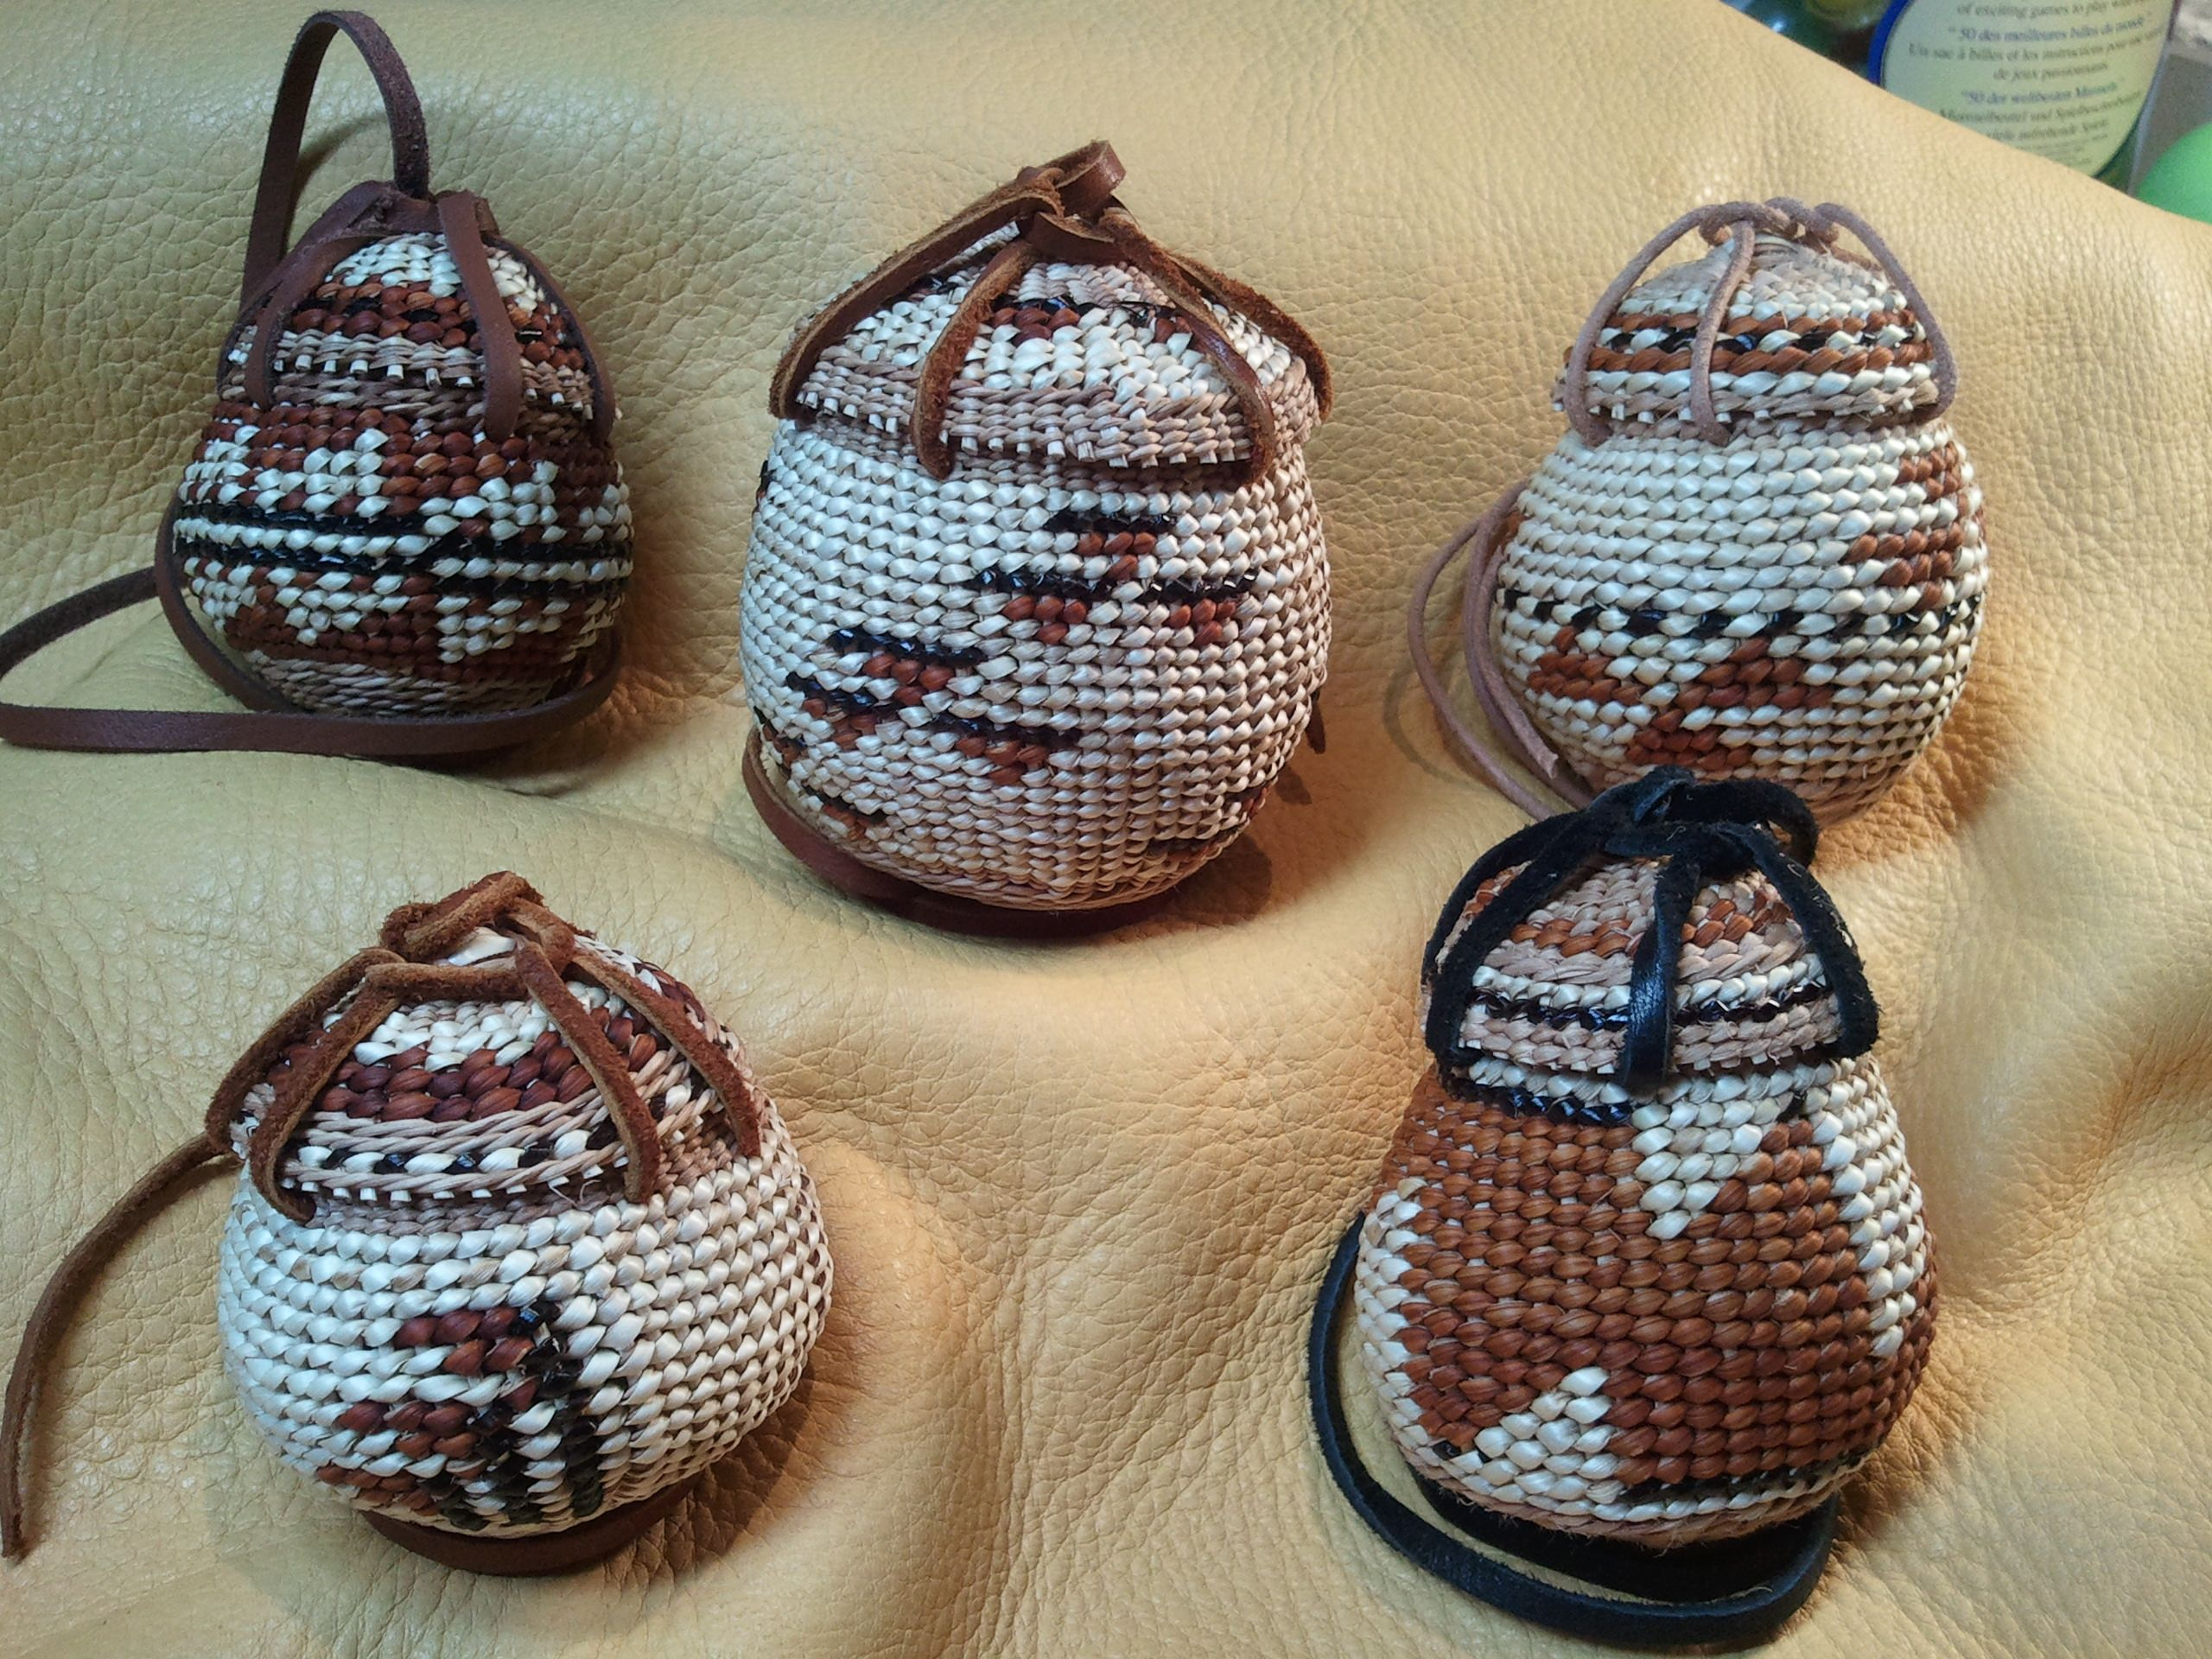 Assorted Tobacco Baskets